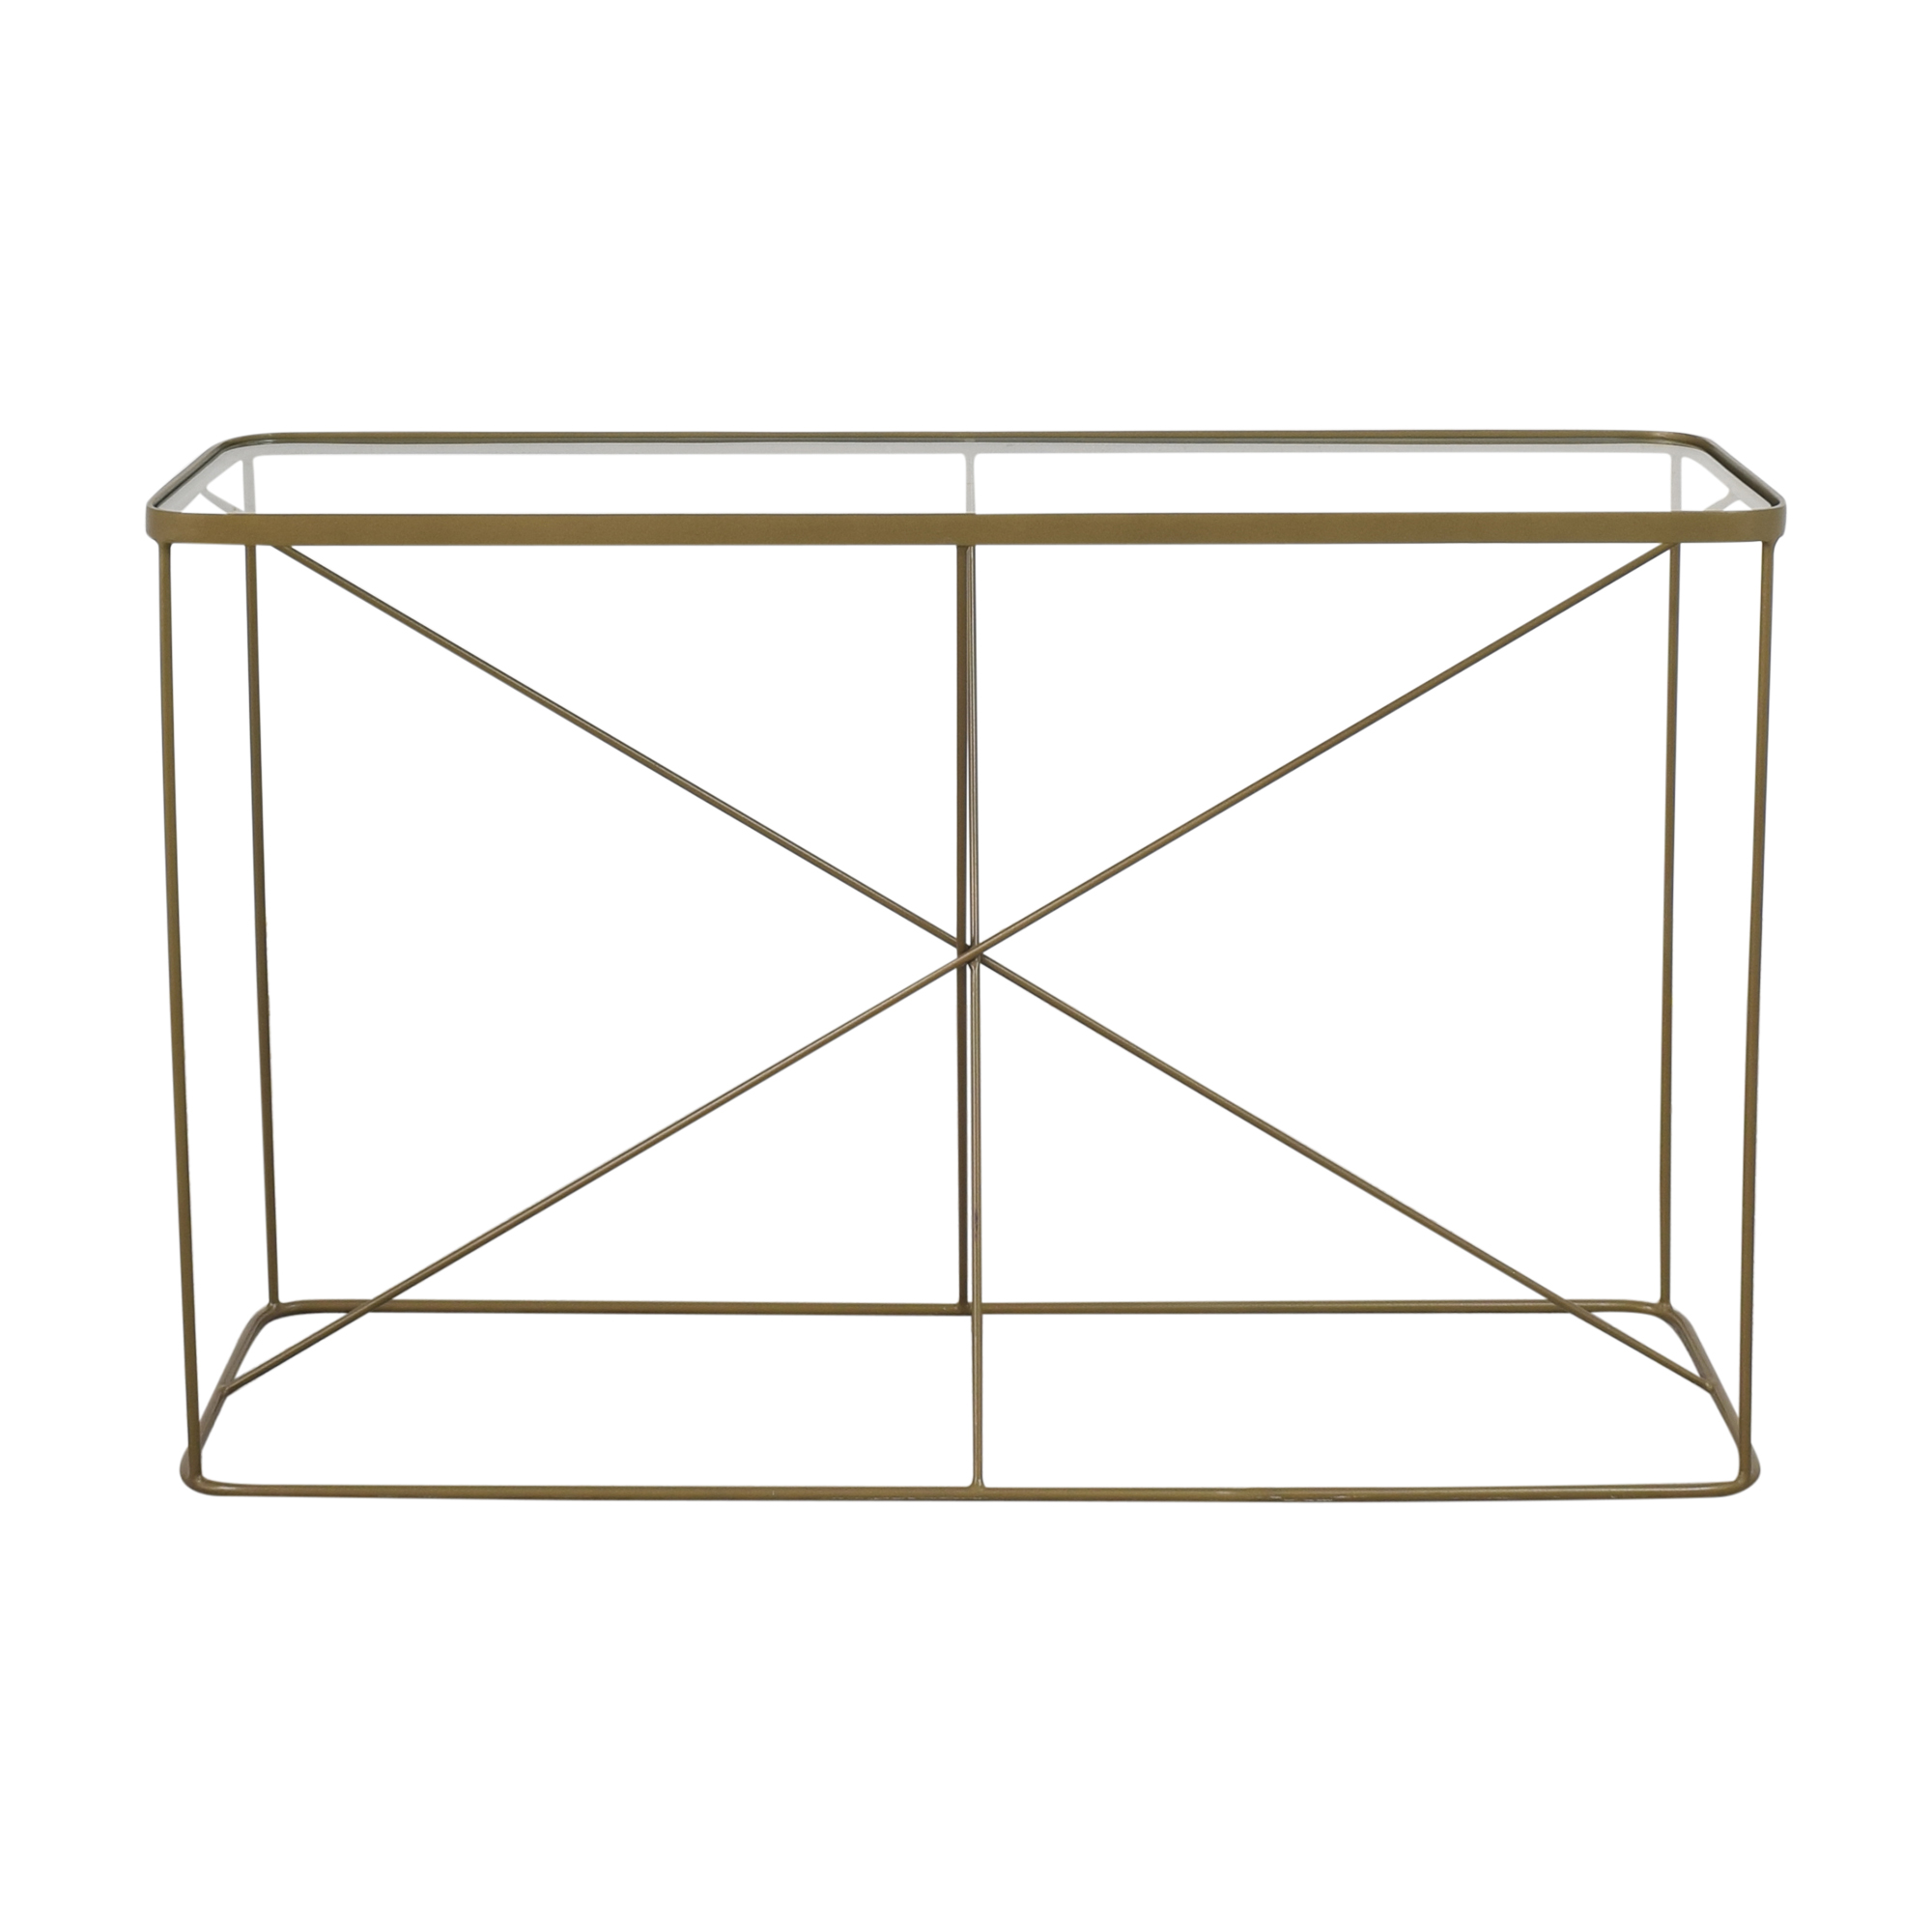 Four Hands Four Hands Lucas Console Table price